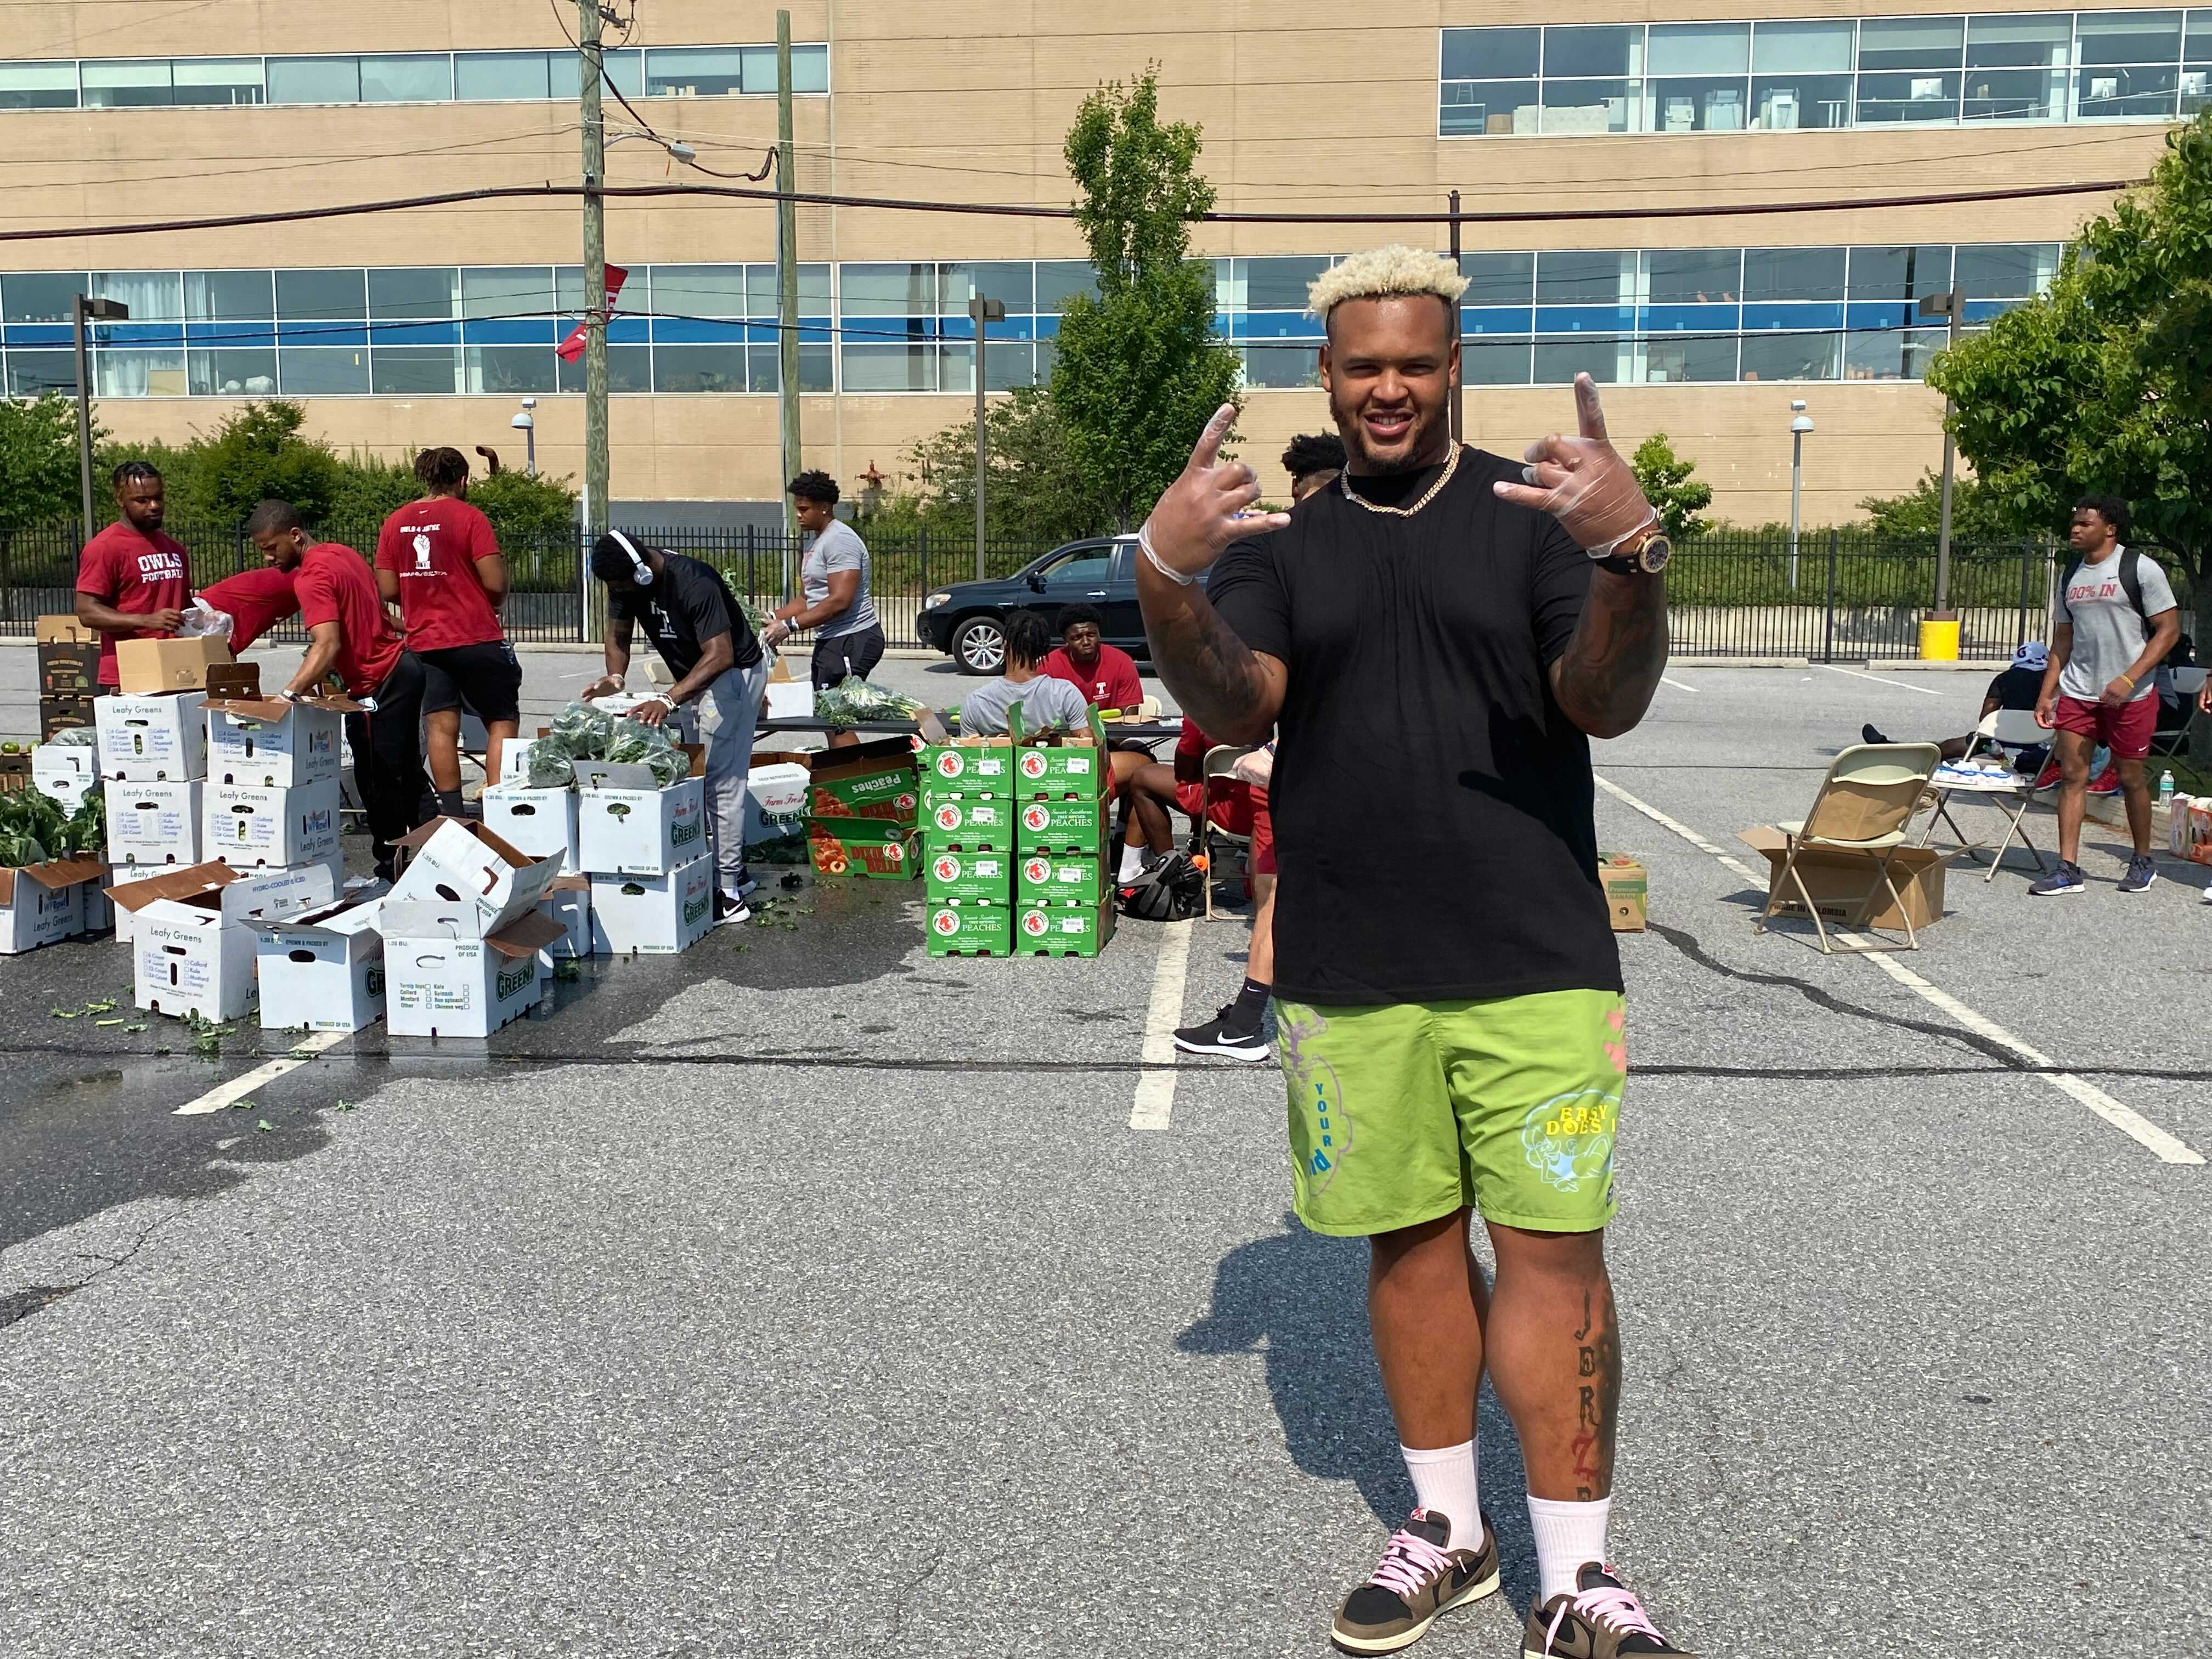 Temple standout turned NFL star leads Owls in giving back at campus food pantry event